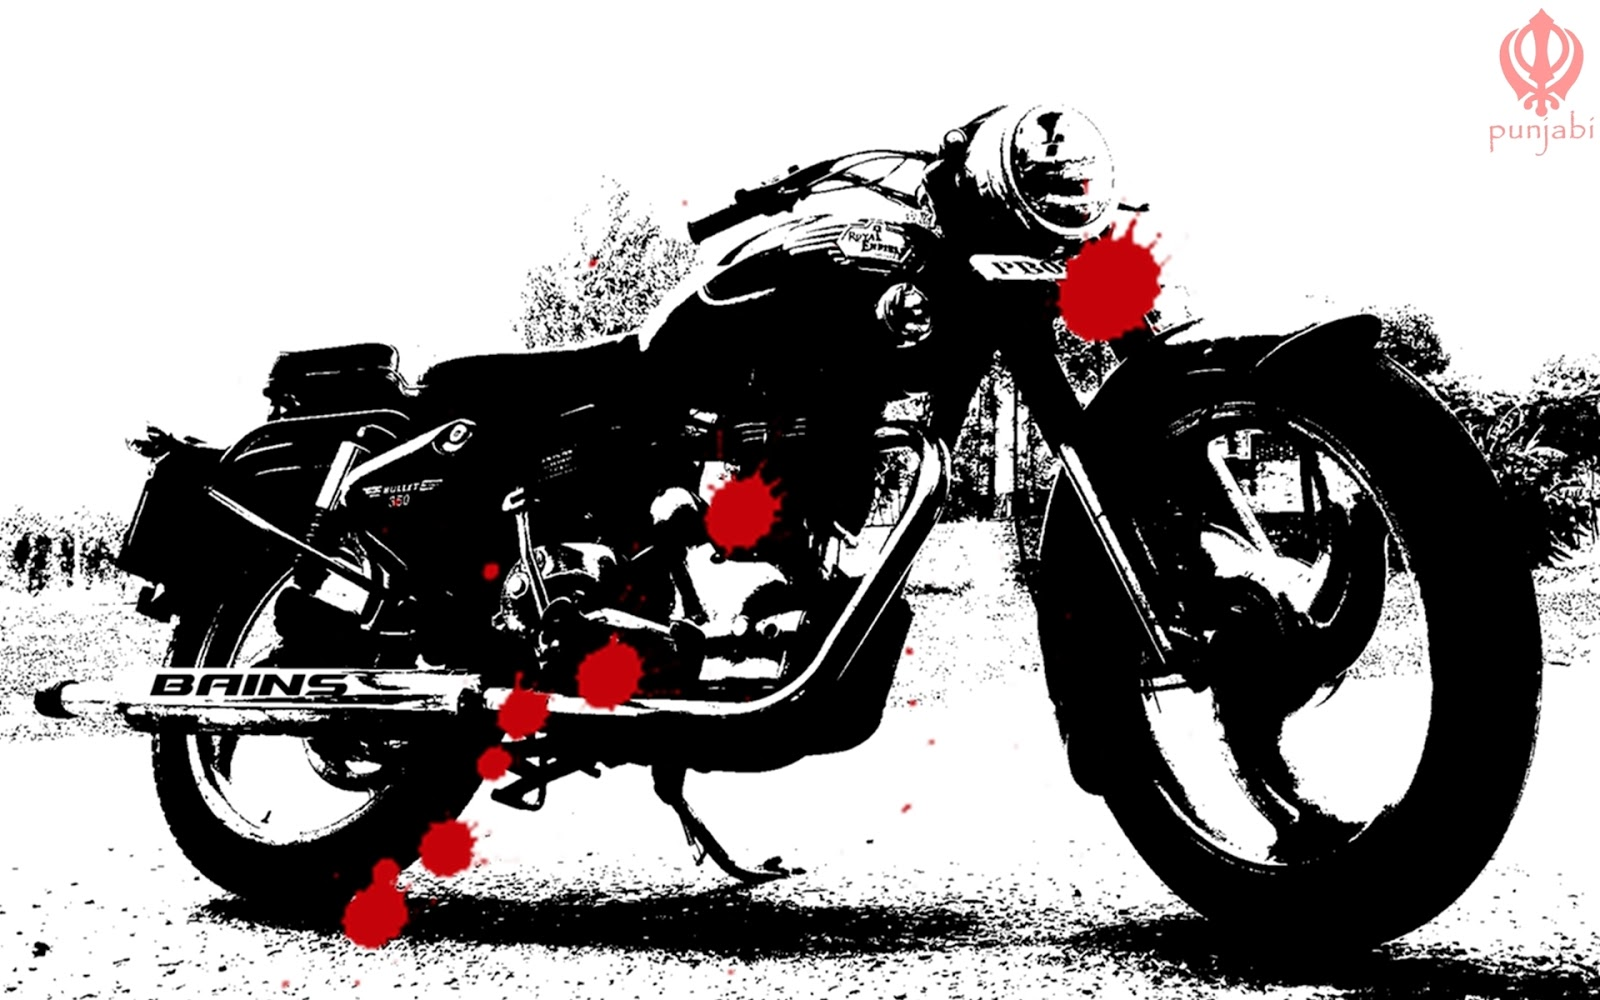 Latest Cars And Bikes Wallpapers Images Photos Top 46 Bike Bulet